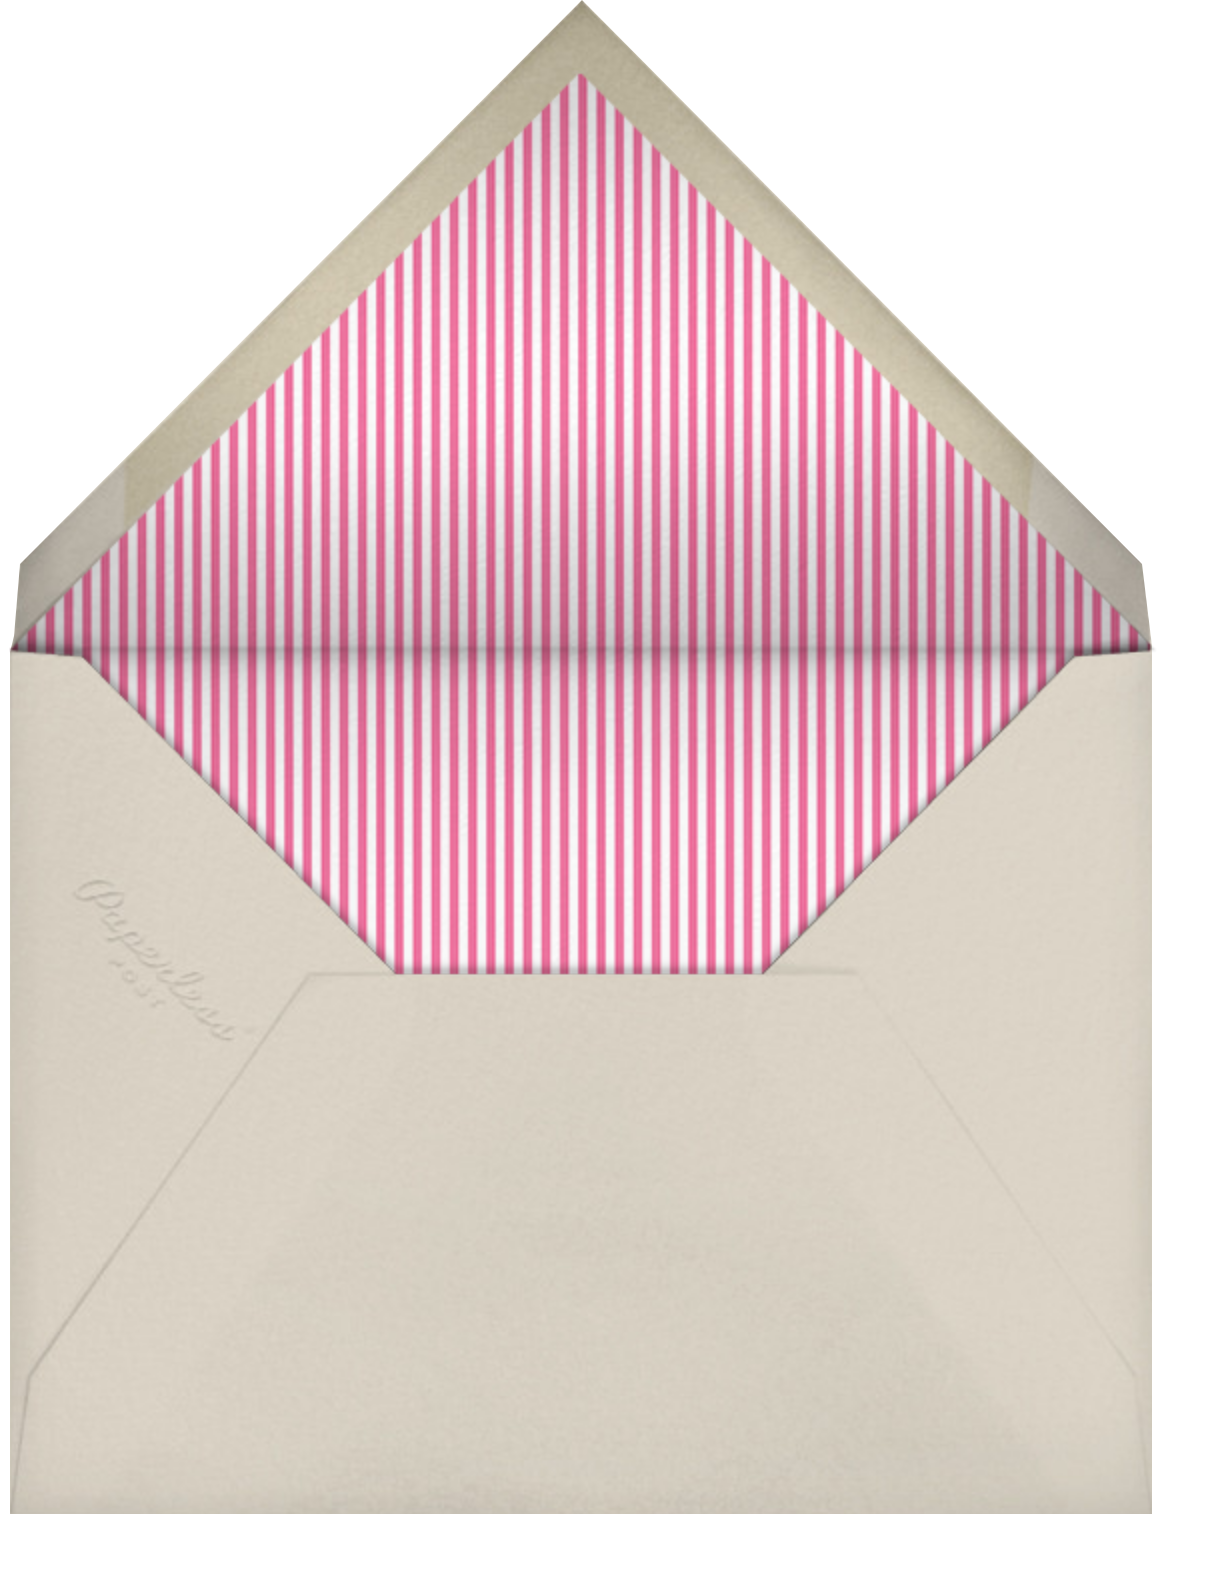 Ring Around the Daisy - Pink - Little Cube - Woodland baby shower invitations - envelope back